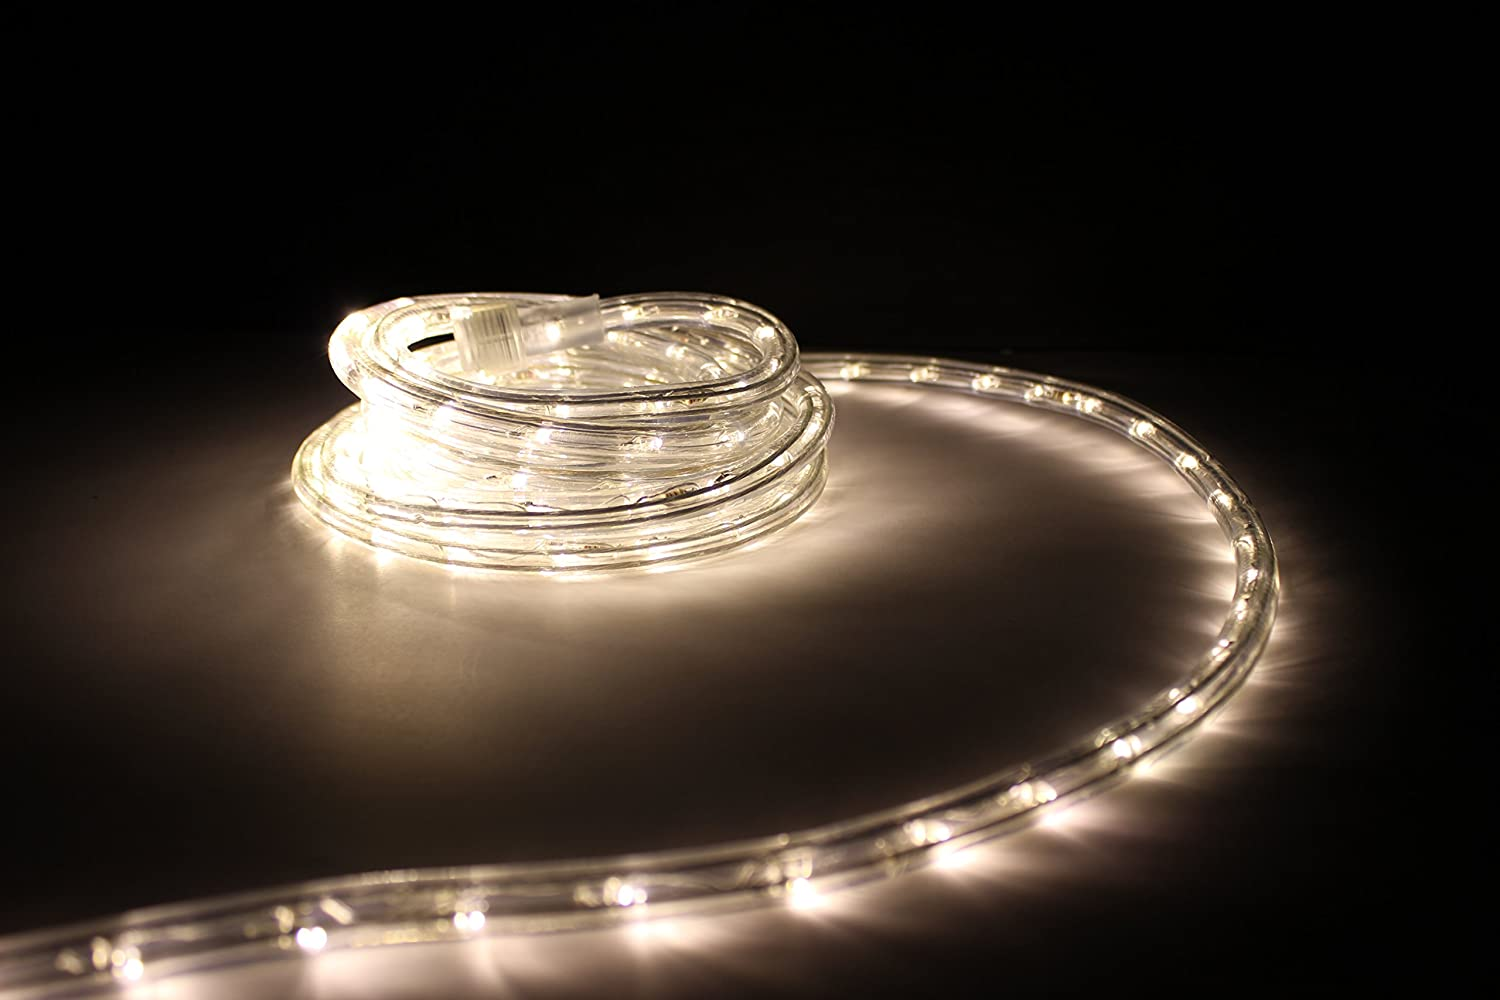 Amazon 25ft rope lights soft white led rope light kit 10led amazon 25ft rope lights soft white led rope light kit 10led spacing christmas lighting outdoor rope lighting home improvement mozeypictures Images